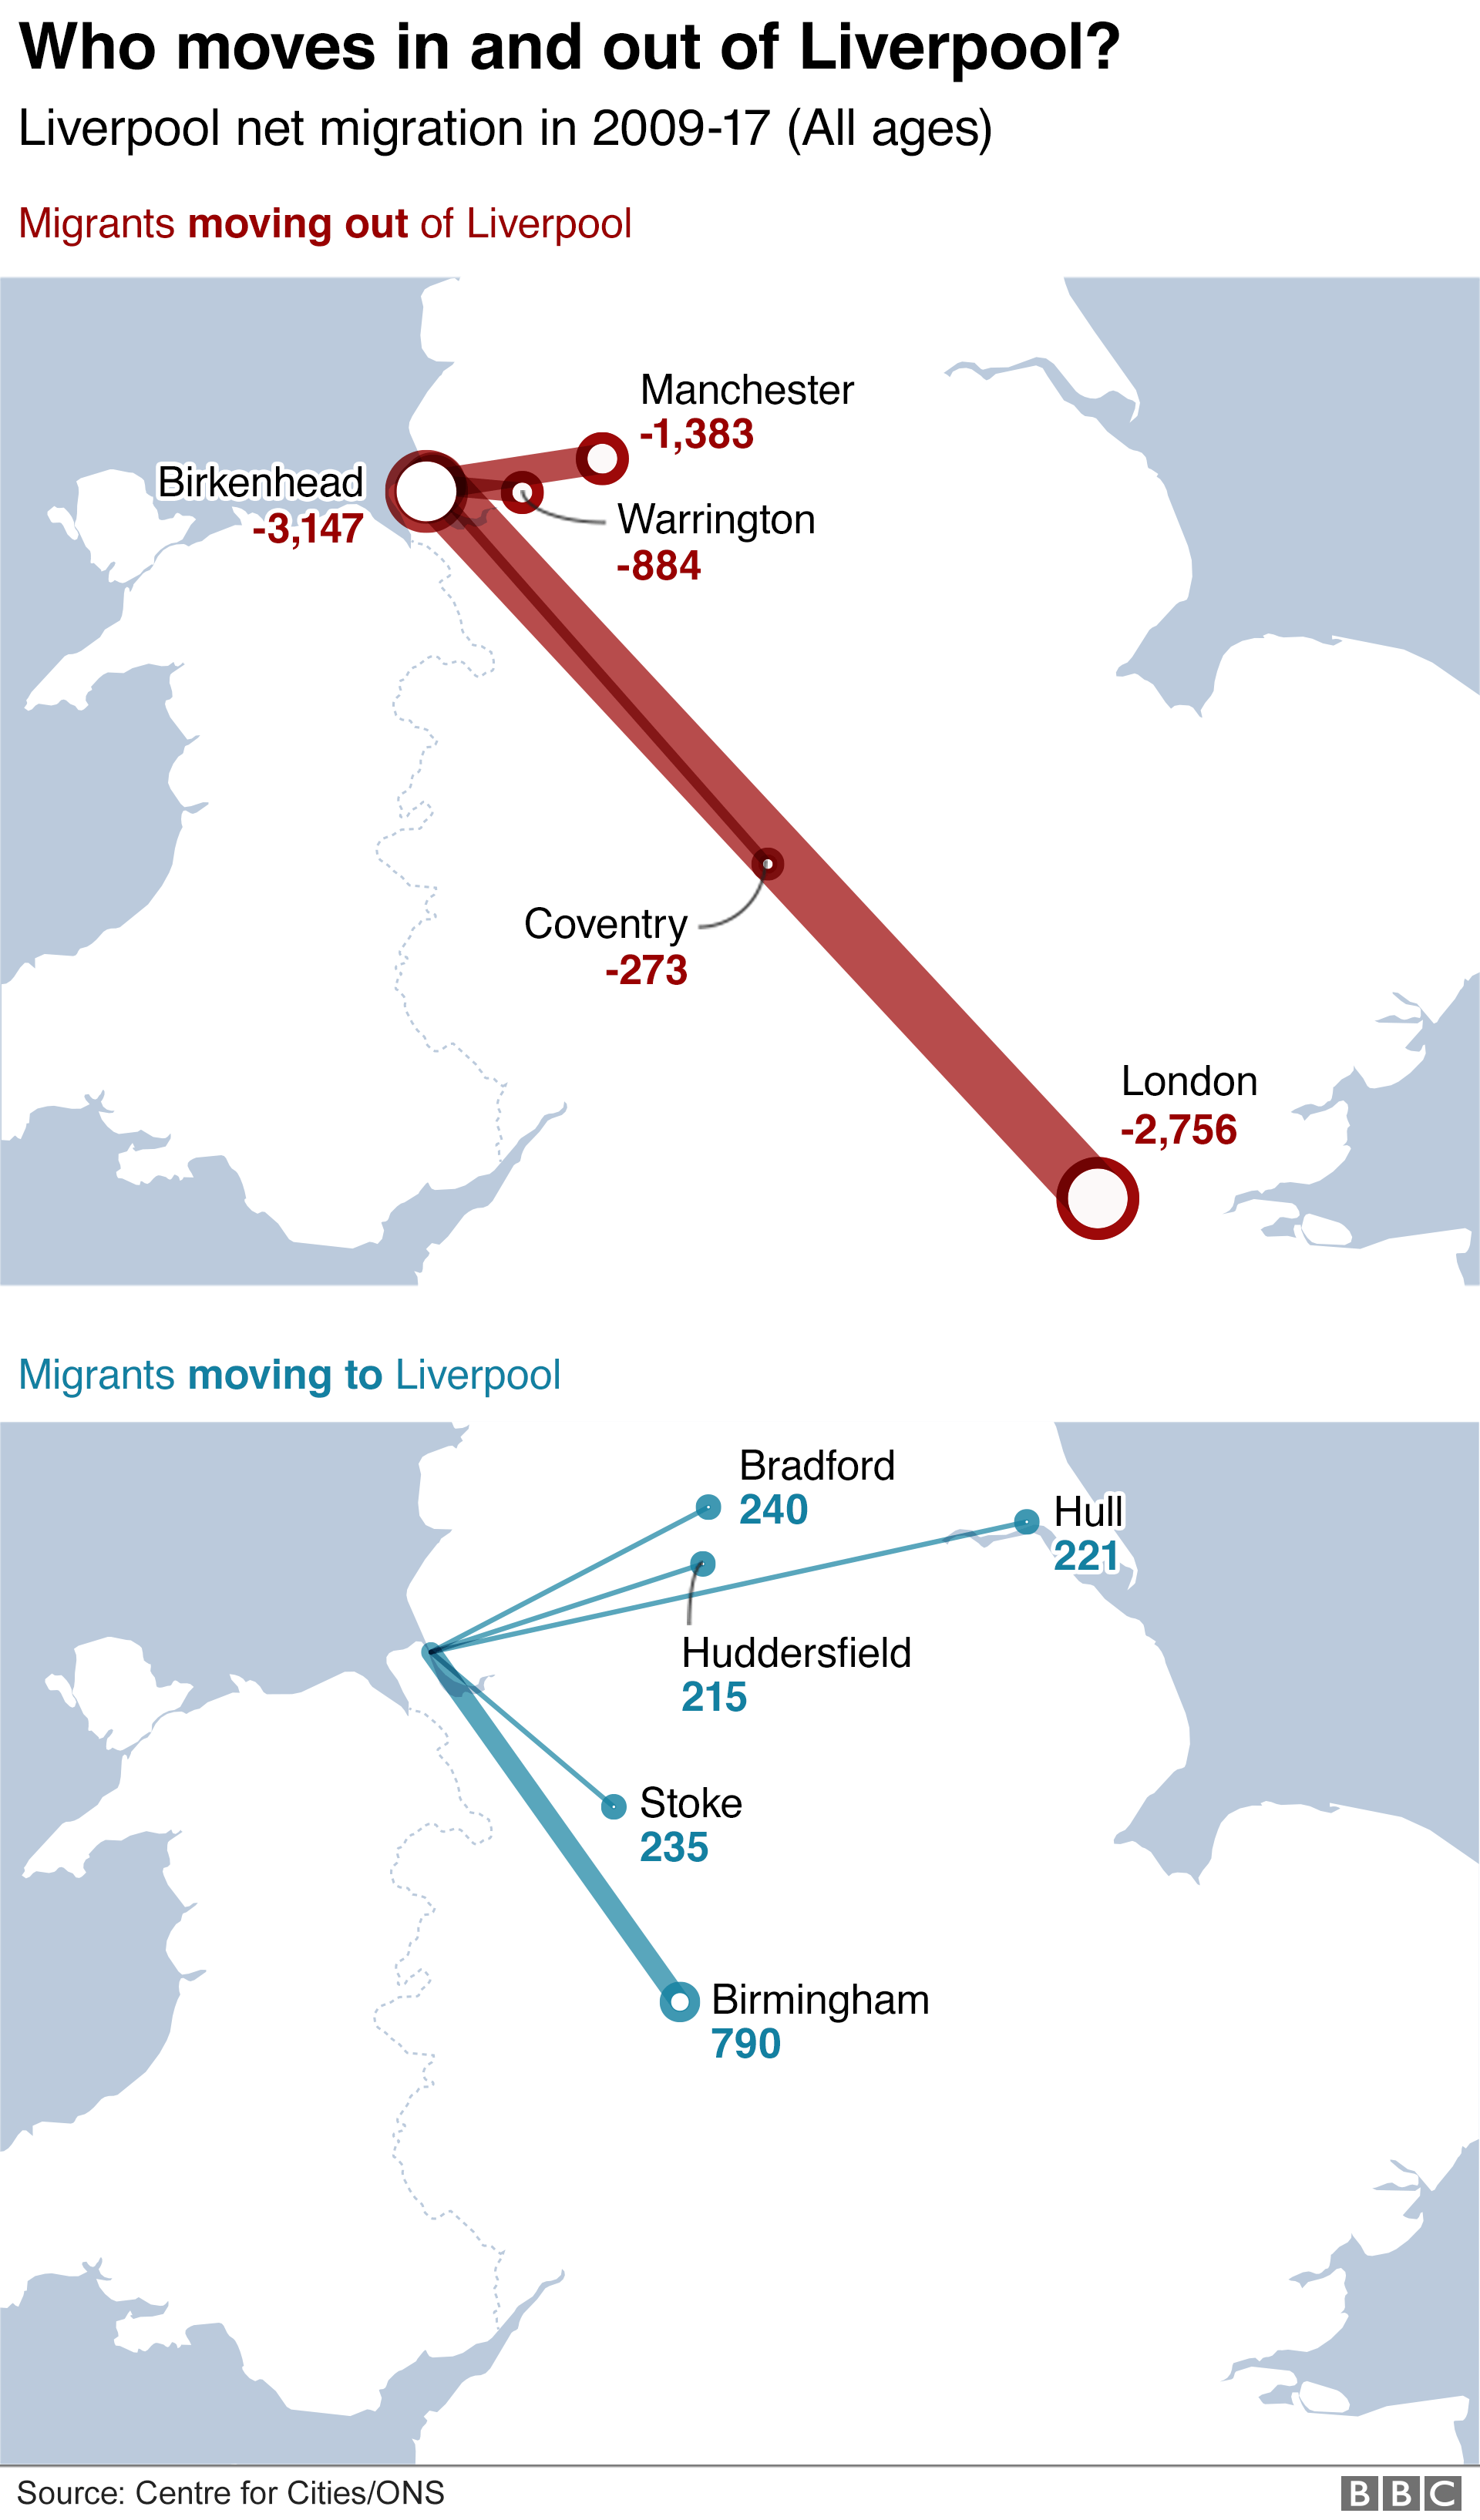 Net migration to and from Liverpool